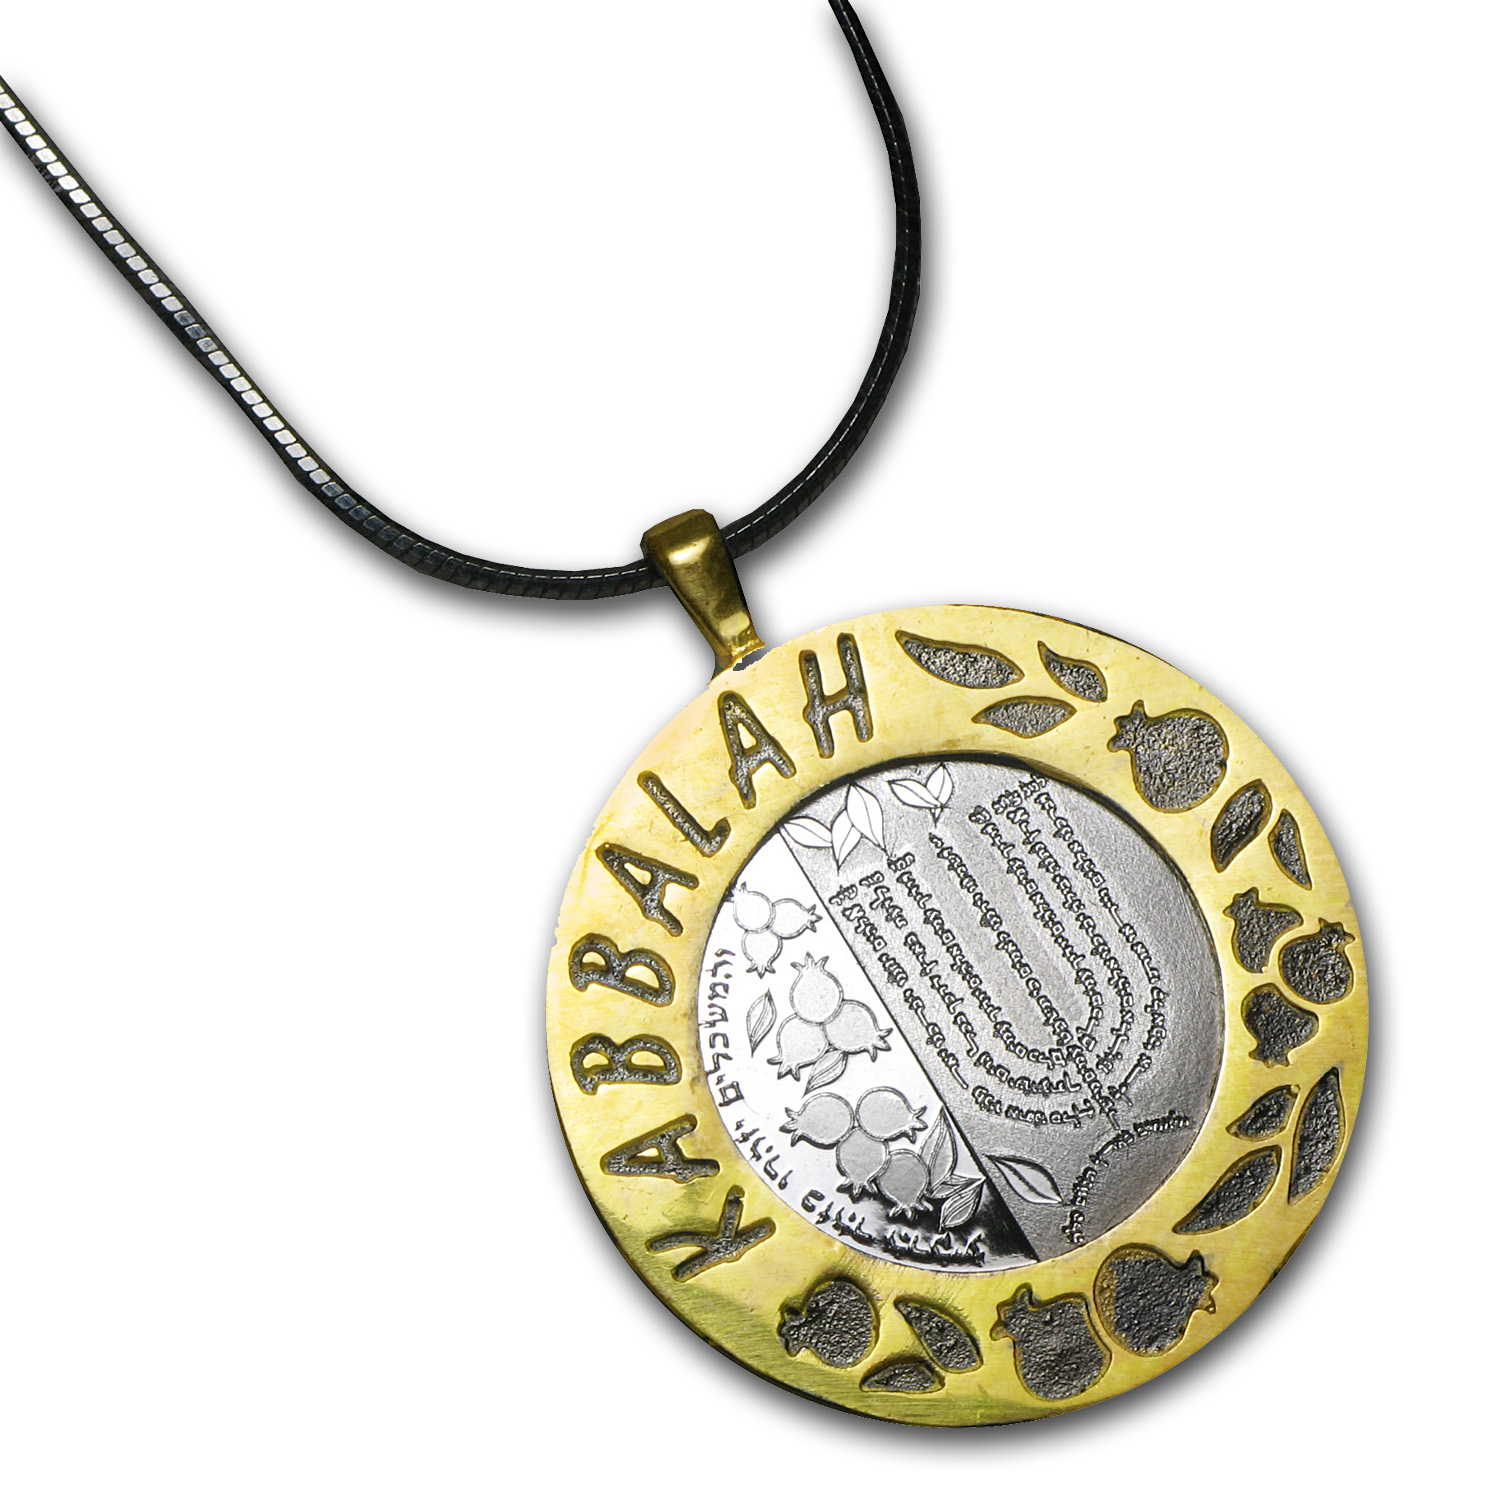 Israel Kabbalah Amulet Silver Medal with Gold Pendant